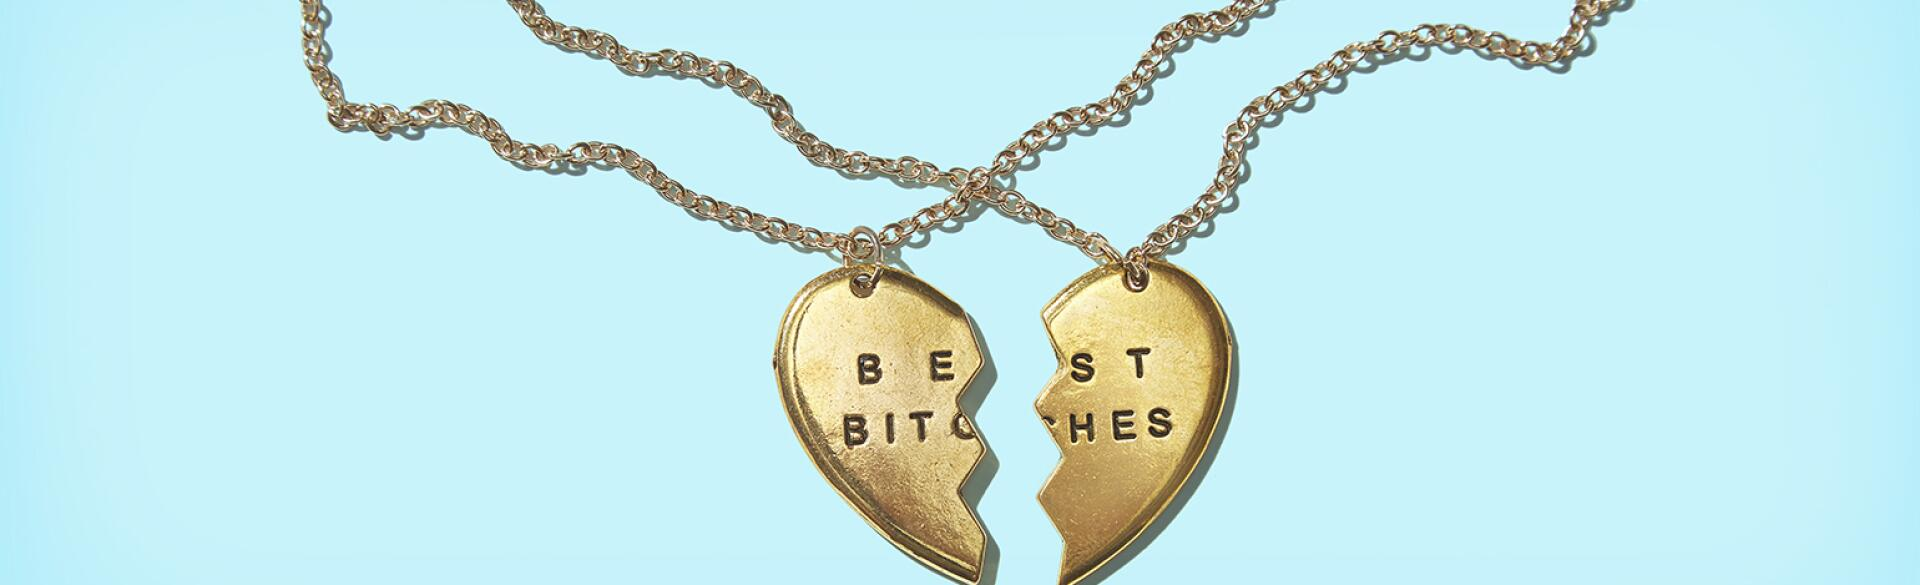 best bitches necklaces broken into two pieces